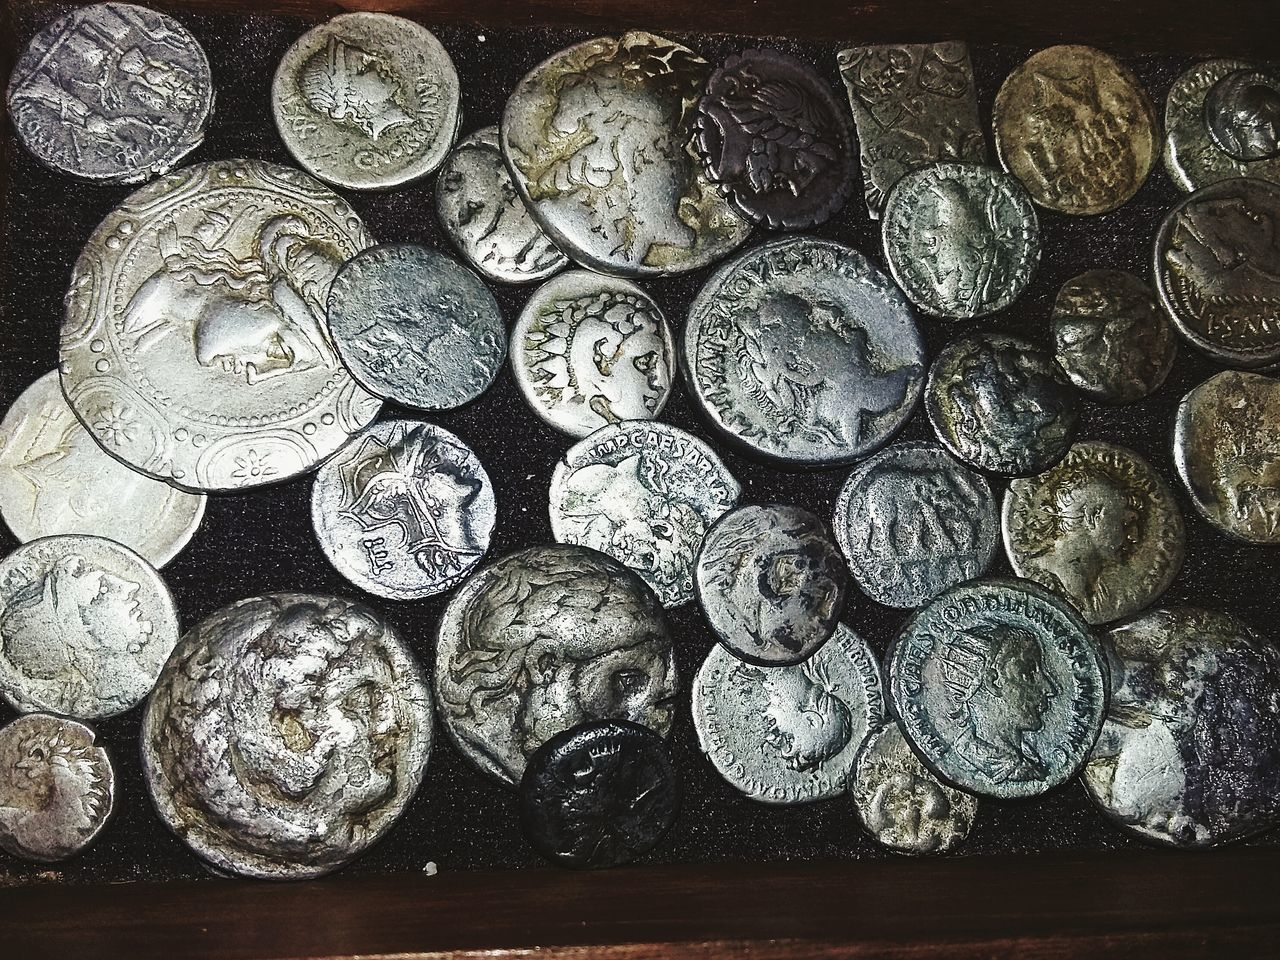 Ancient coins. Romans Roma Grece Persian B.C. A.C. Coins AR Coins Collection Antient Ancient Money Archeology Grèce, Greece, Alexander The Great Phillip Silver Coins